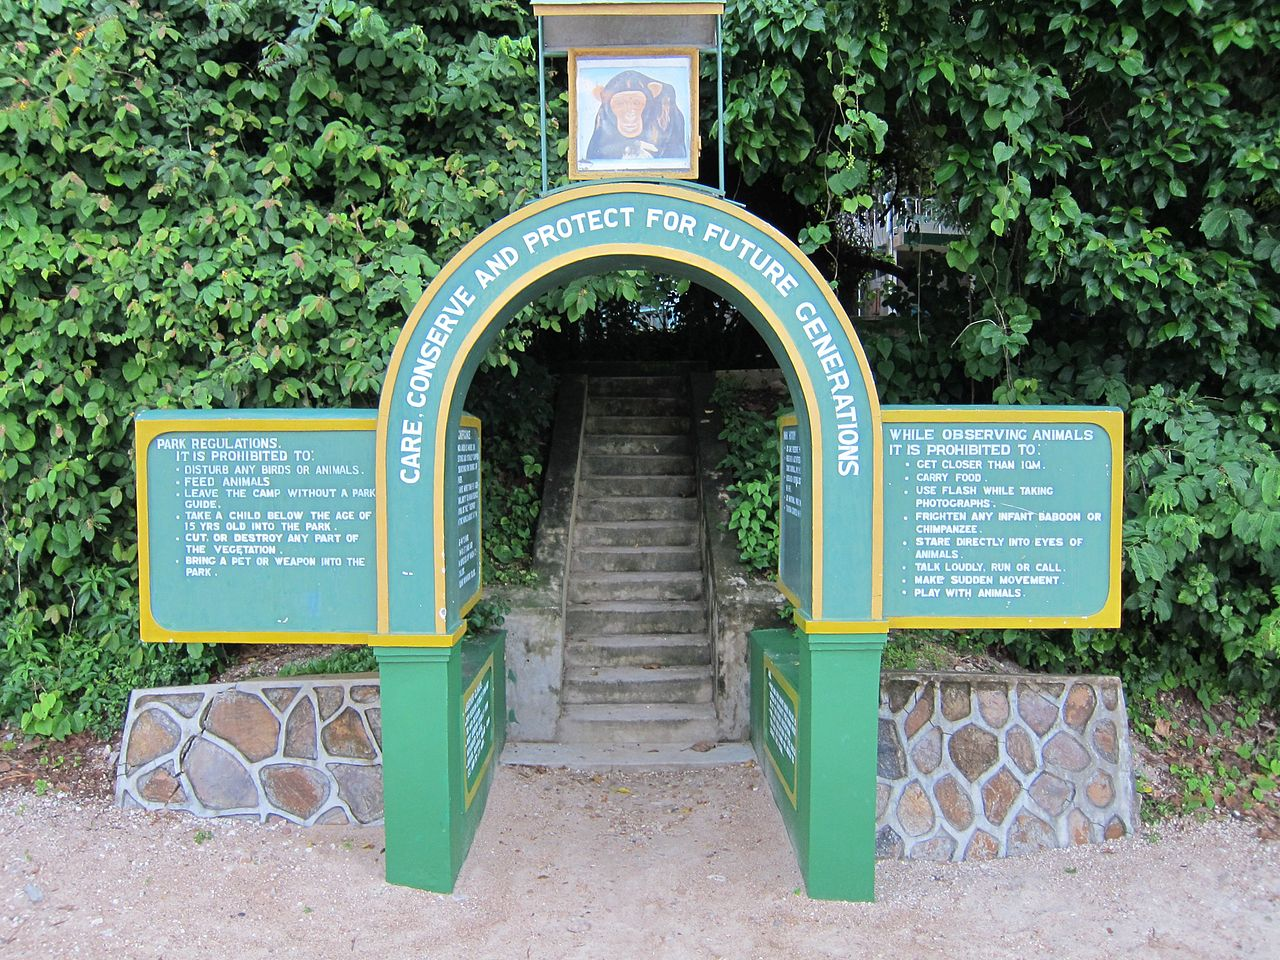 Entrance to Gombe Stream National Park